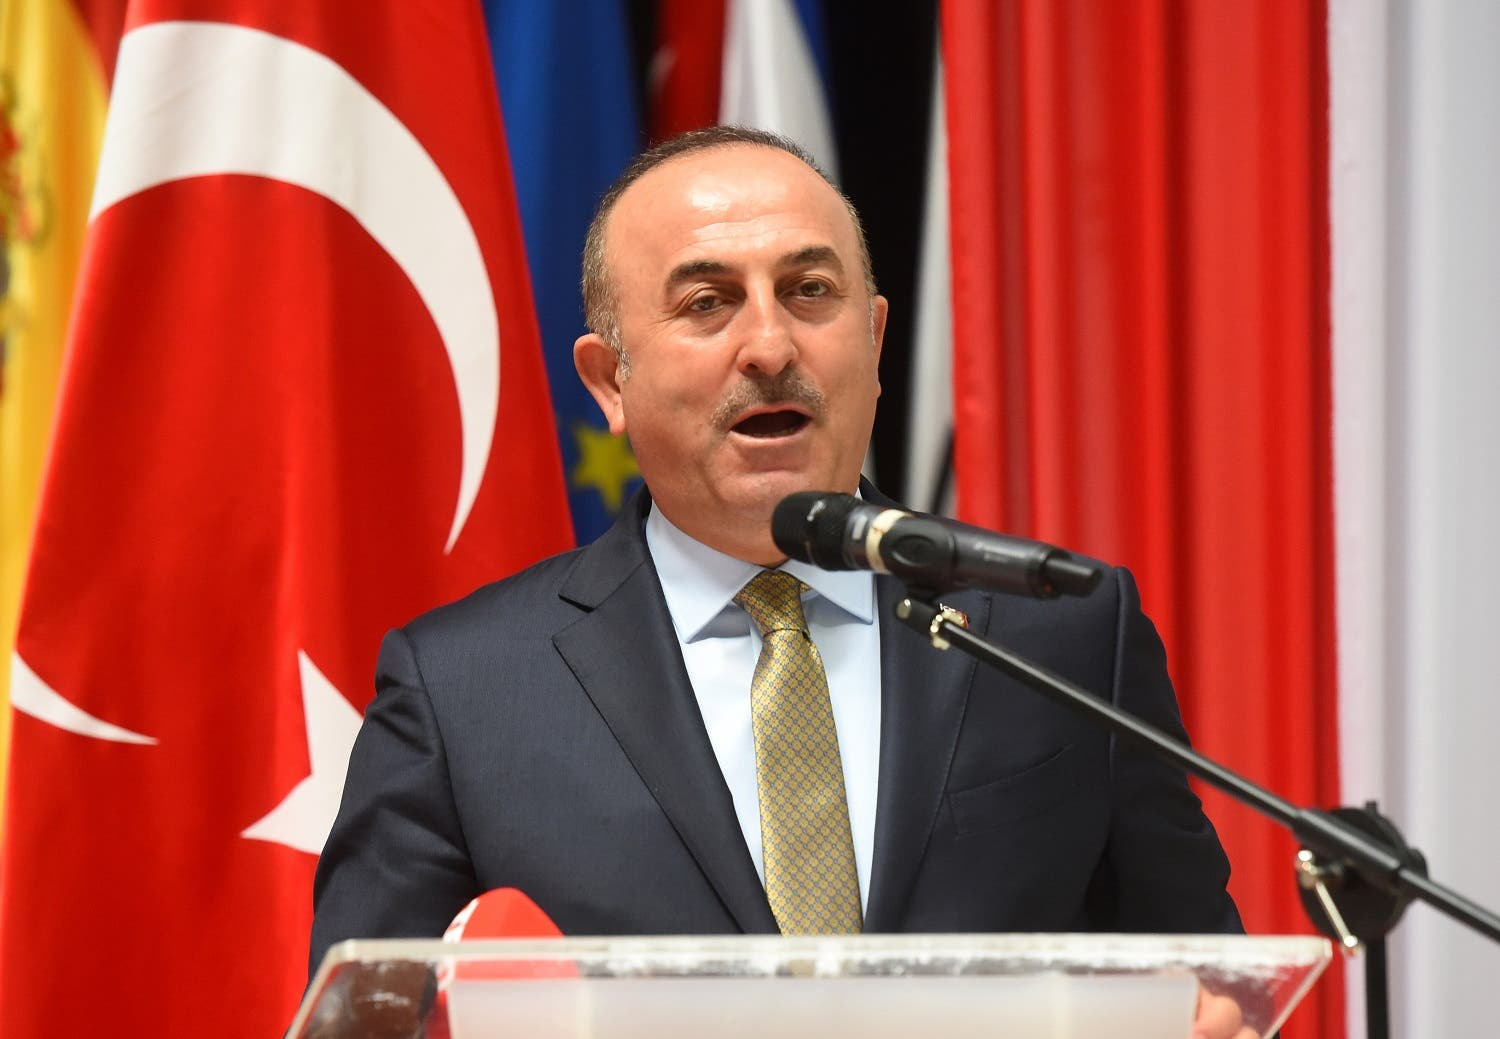 Foreign Minister Mevlut Cavusoglu lashed out at Iran in a speech to the Munich Security Conference at the weekend. (AFP)